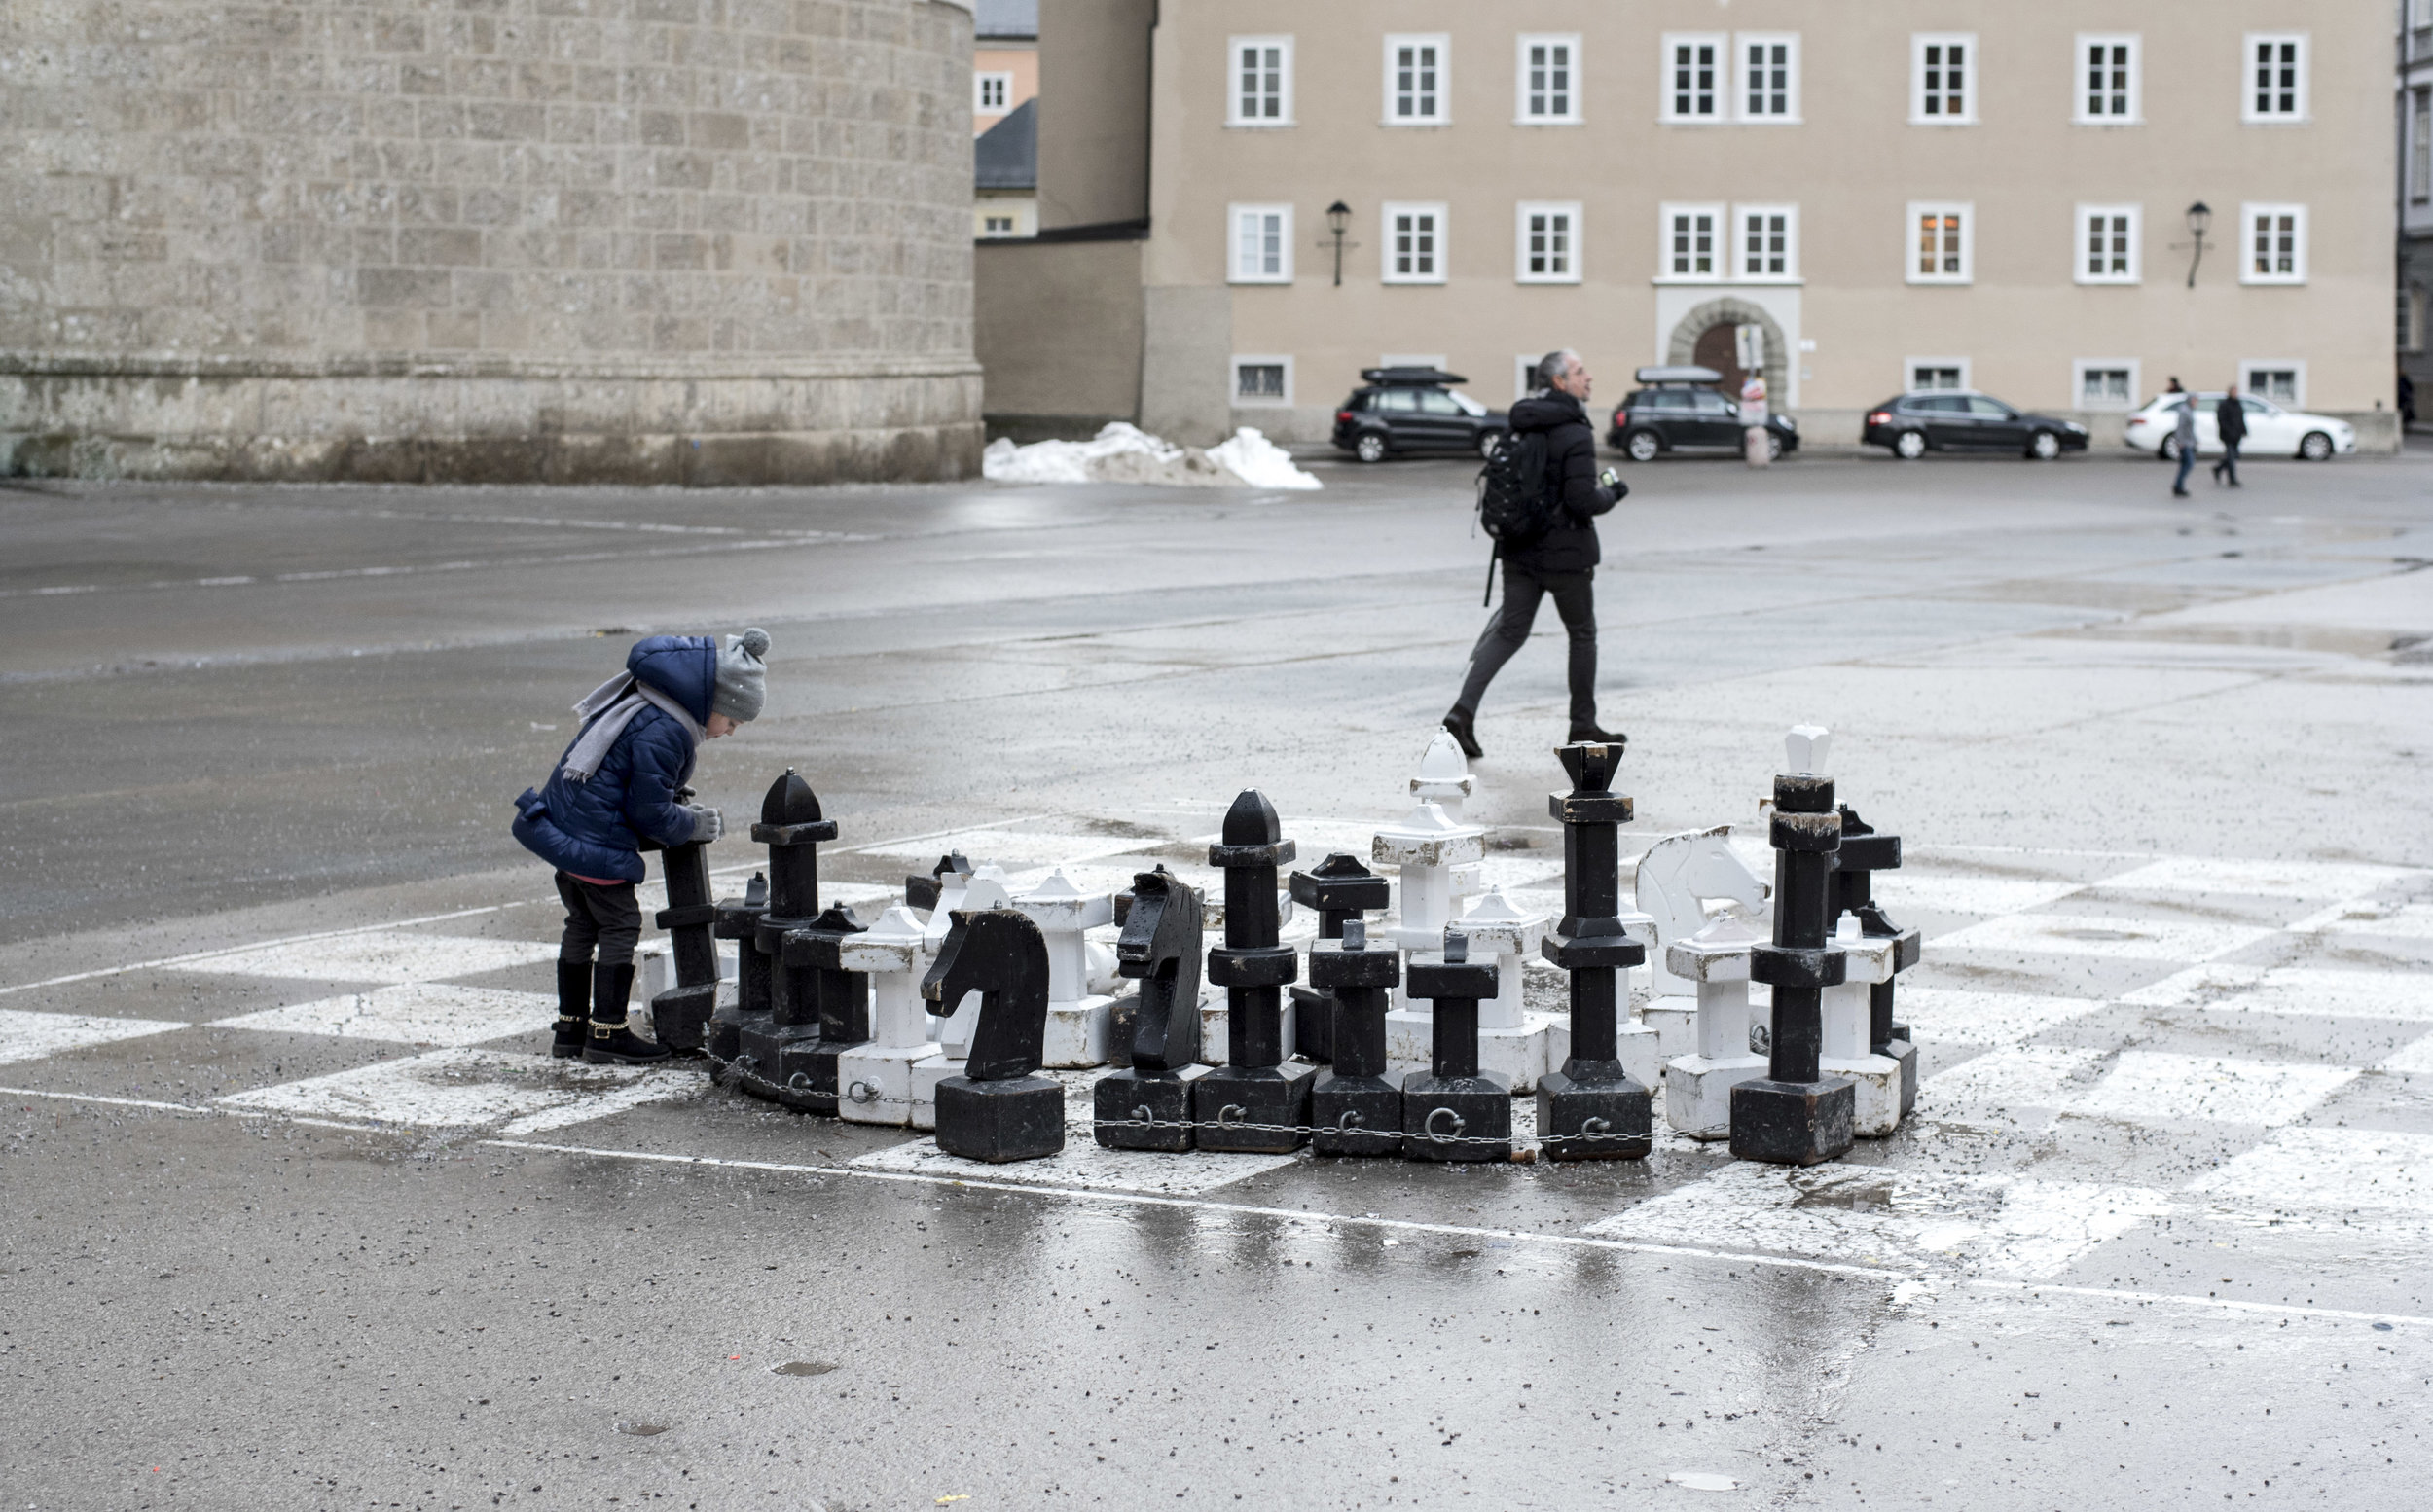 Can we interest you in a game of giant chess?